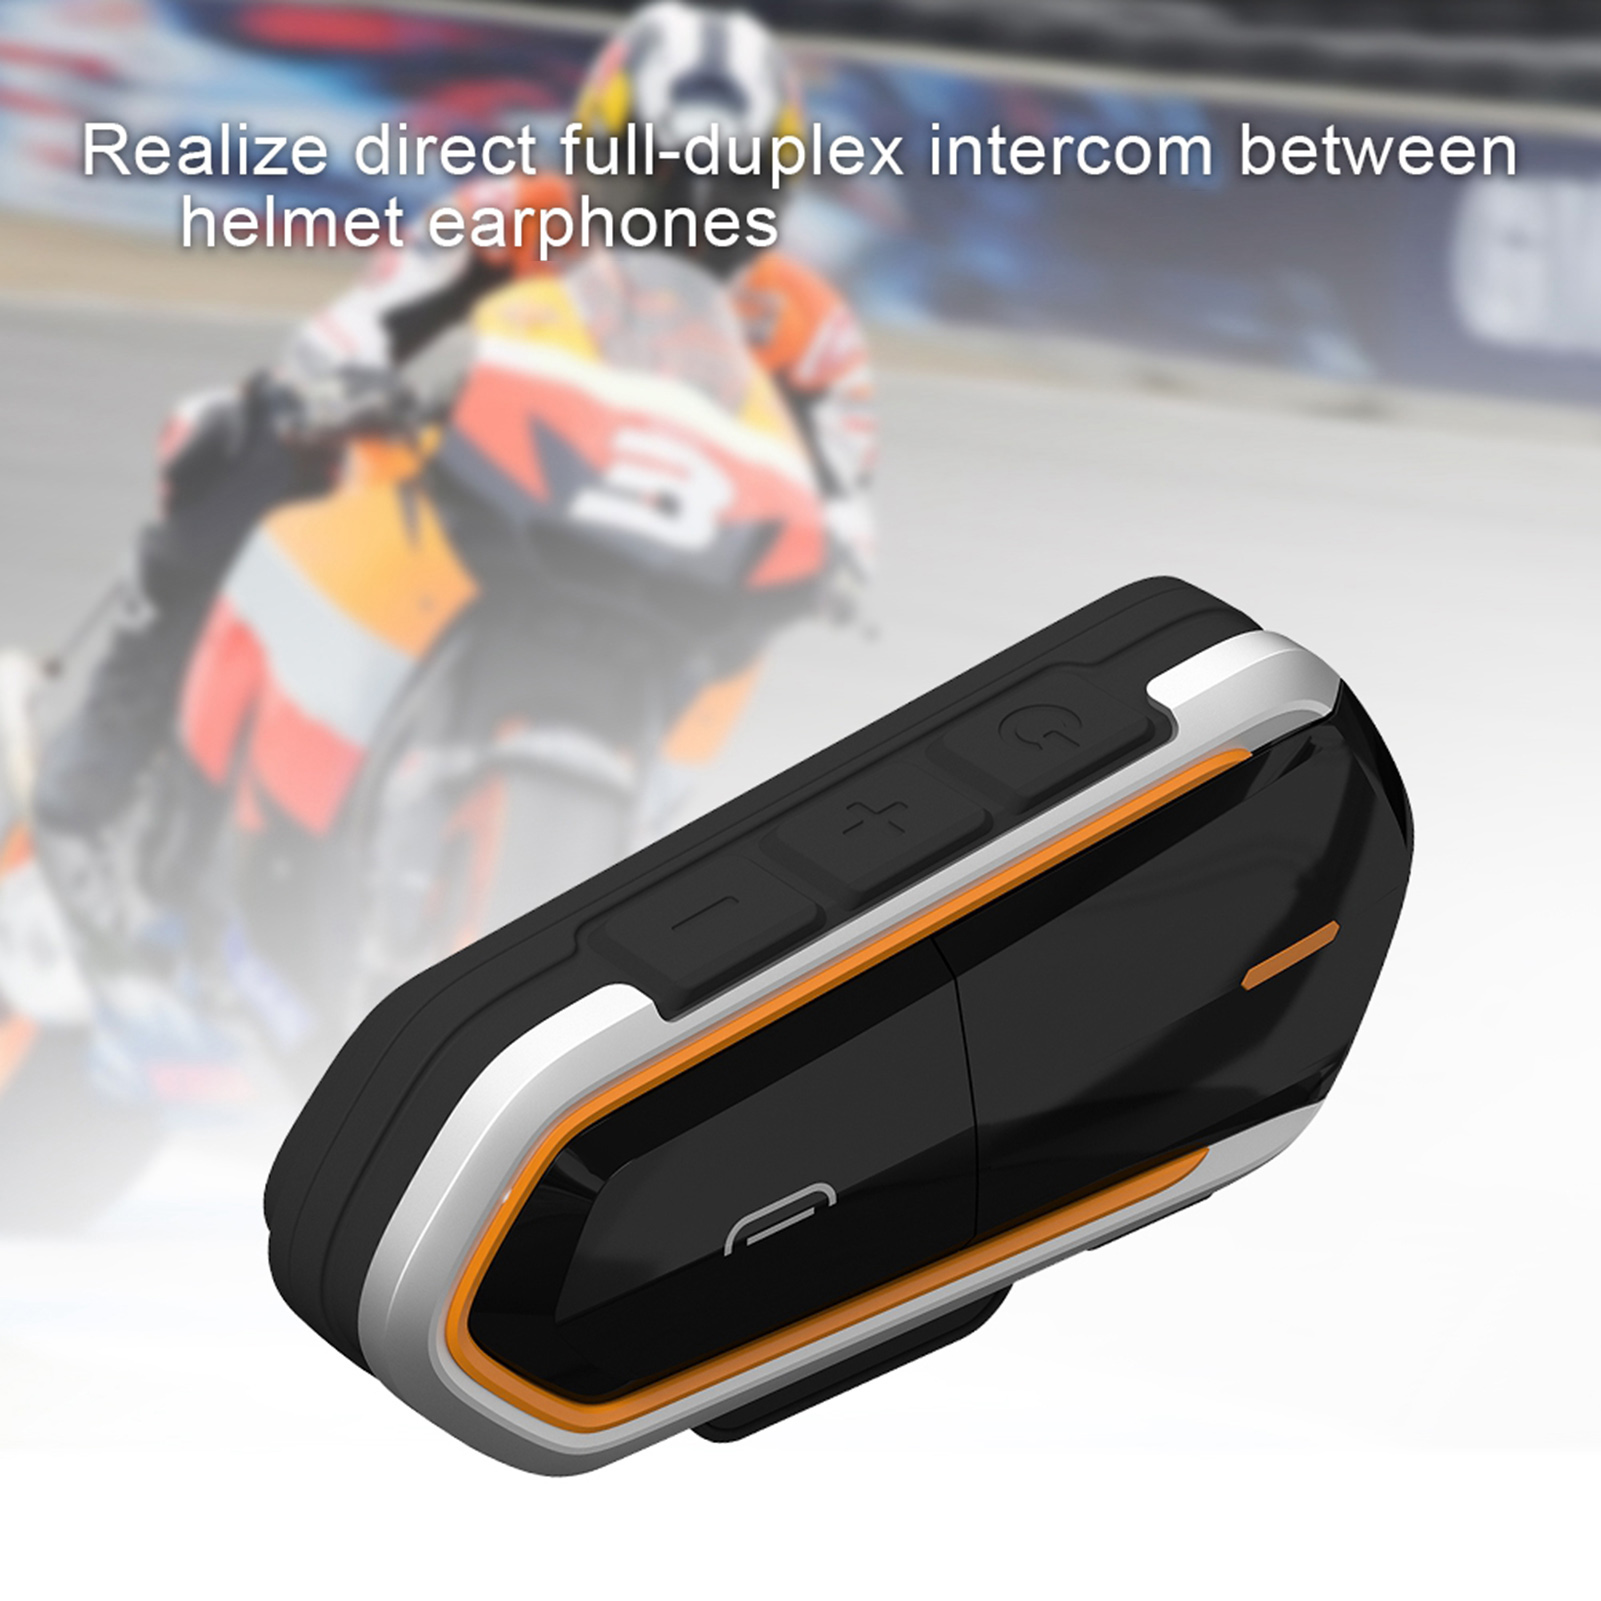 Wireless-Bluetooth-Helmet-Interphone-Earphone-Long-Distance-FM-Helmet-Headset miniature 18